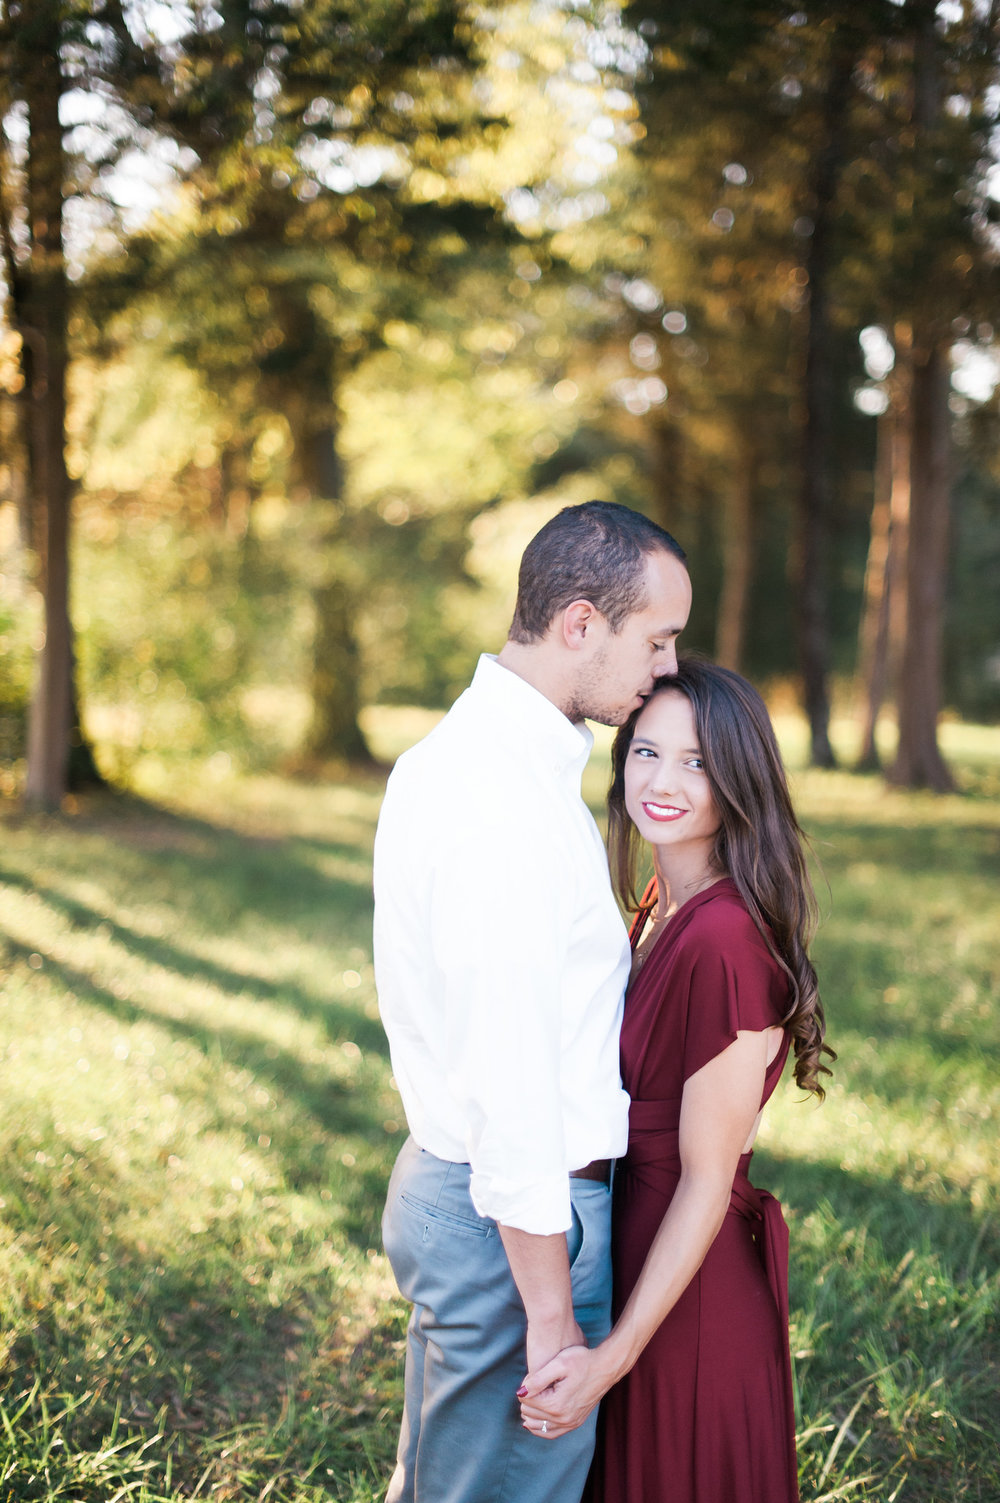 thomas-engagement-091-X4.jpg